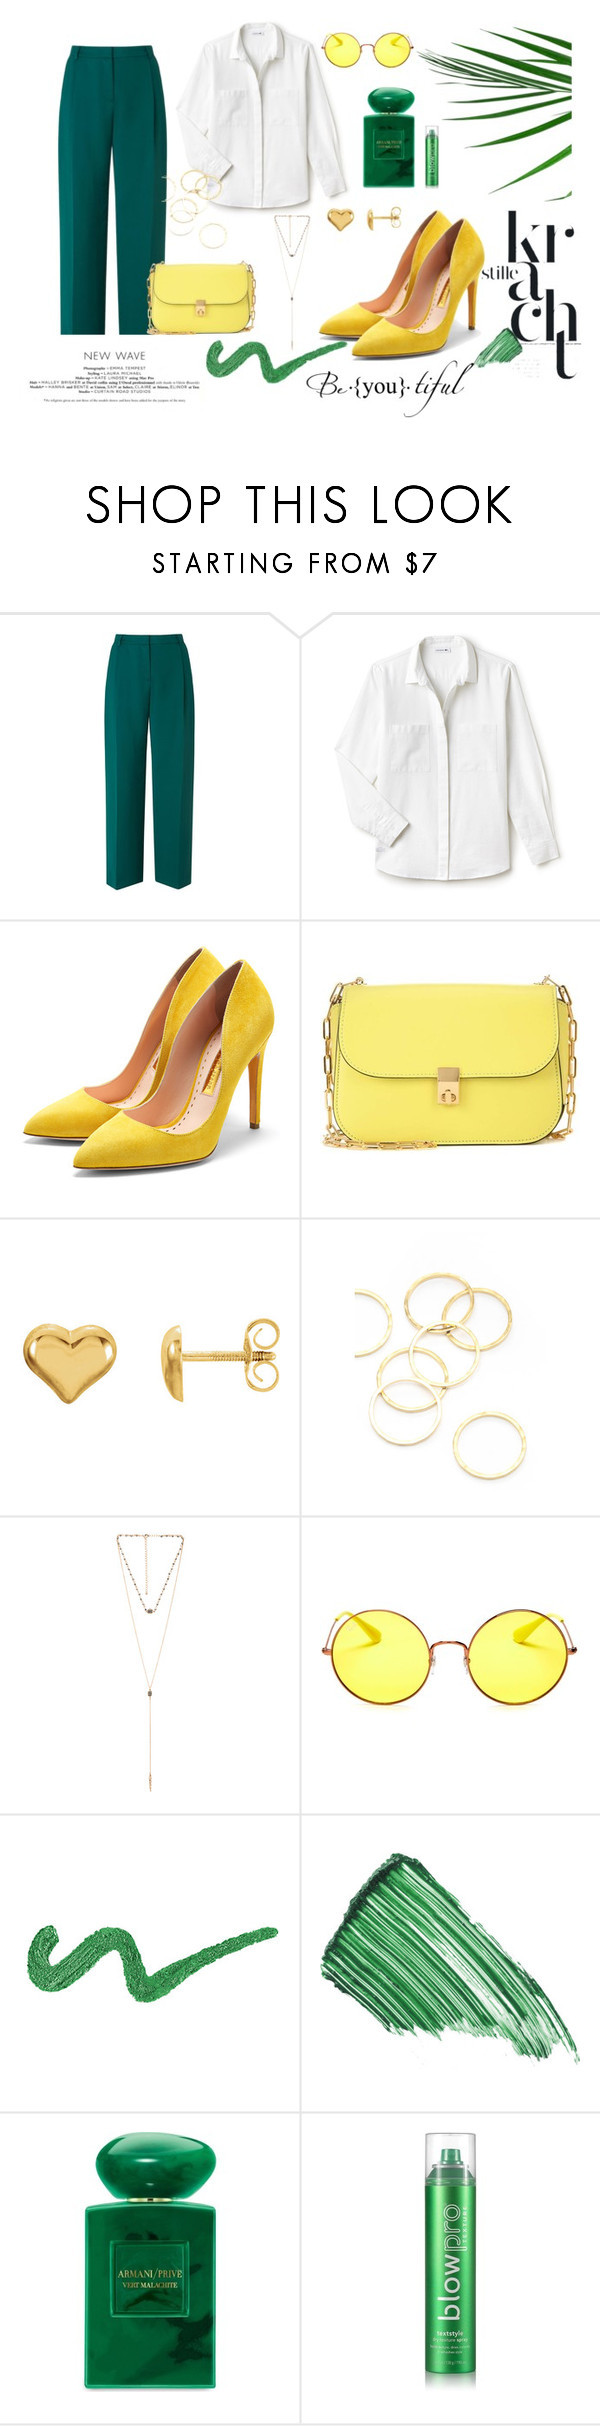 """""""Spring"""" by jeca09 ❤ liked on Polyvore featuring L.K.Bennett, Lacoste, Rupert Sanderson, Valentino, A.V. Max, 8 Other Reasons, Ray-Ban, By Terry, Giorgio Armani and blow"""